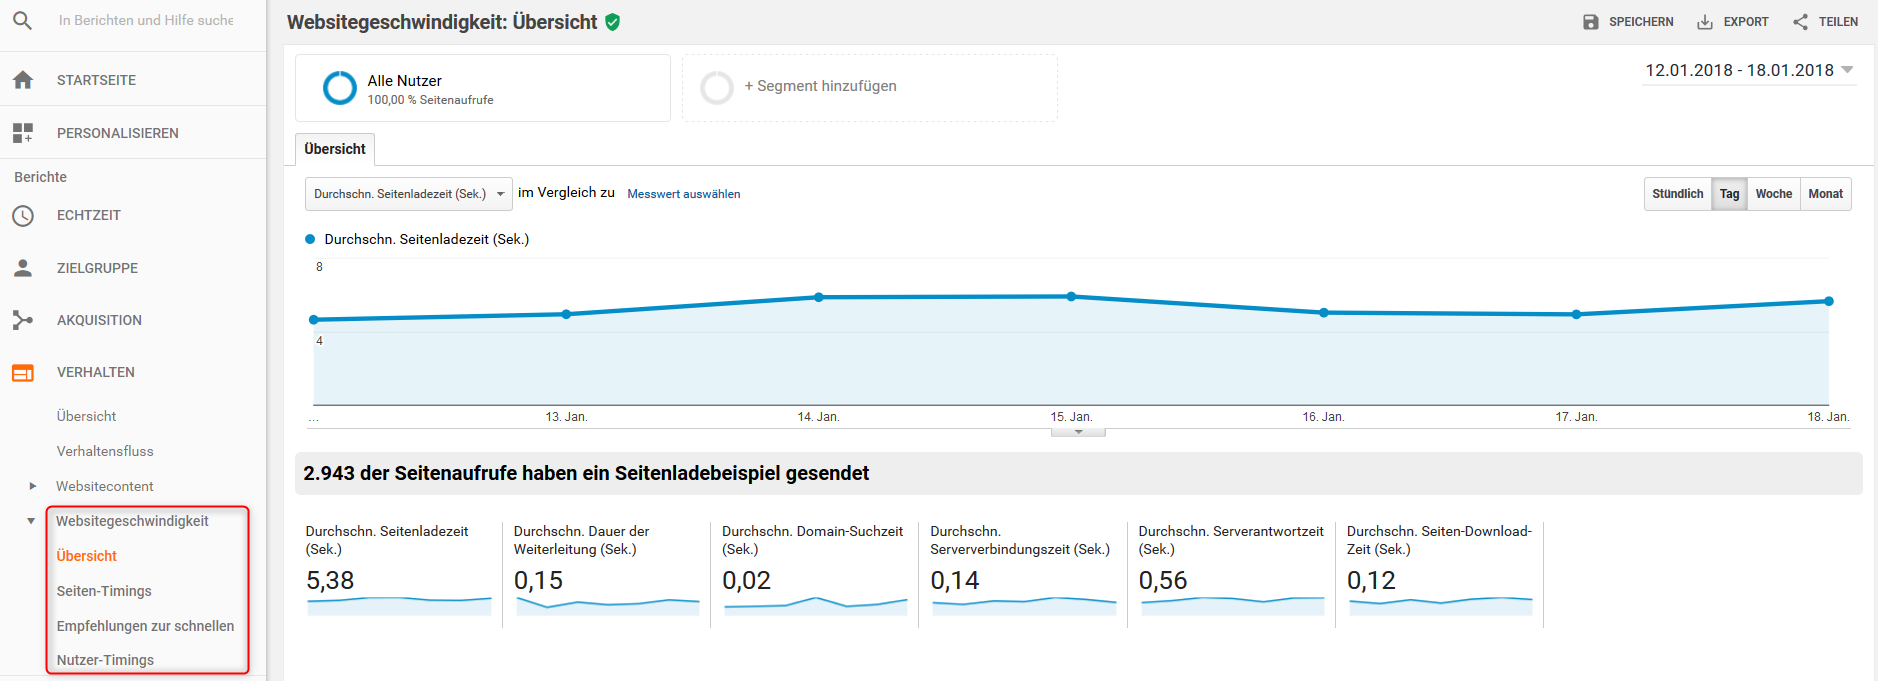 Websitegeschwindigkeit in Google Analytics als SEO-Indikator